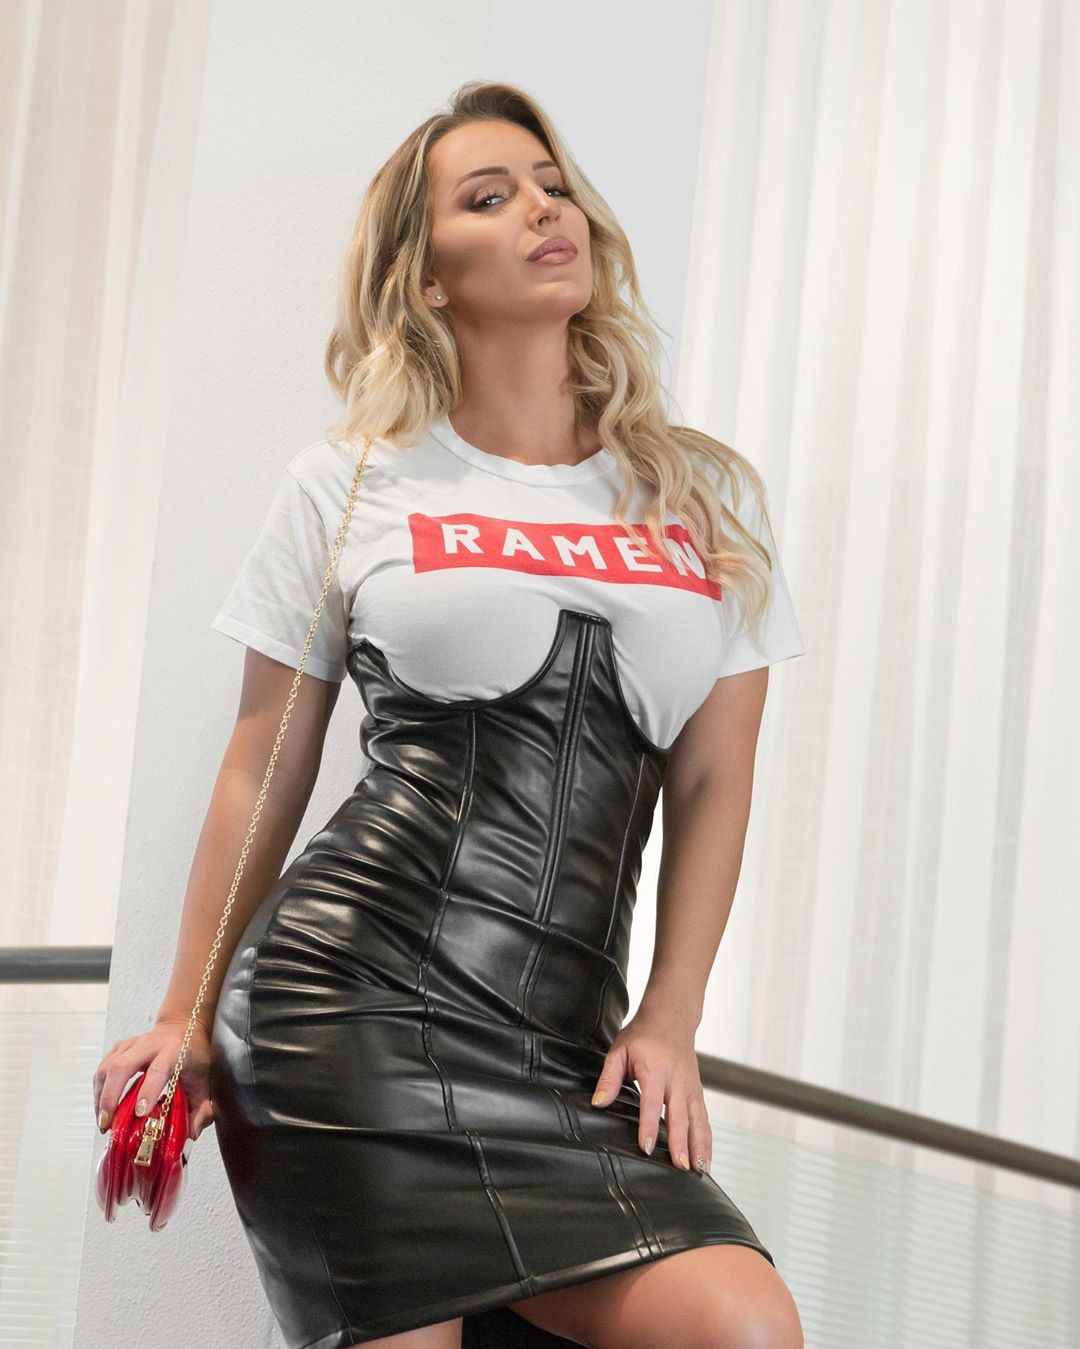 Must try these amazing fashion model, Latex clothing